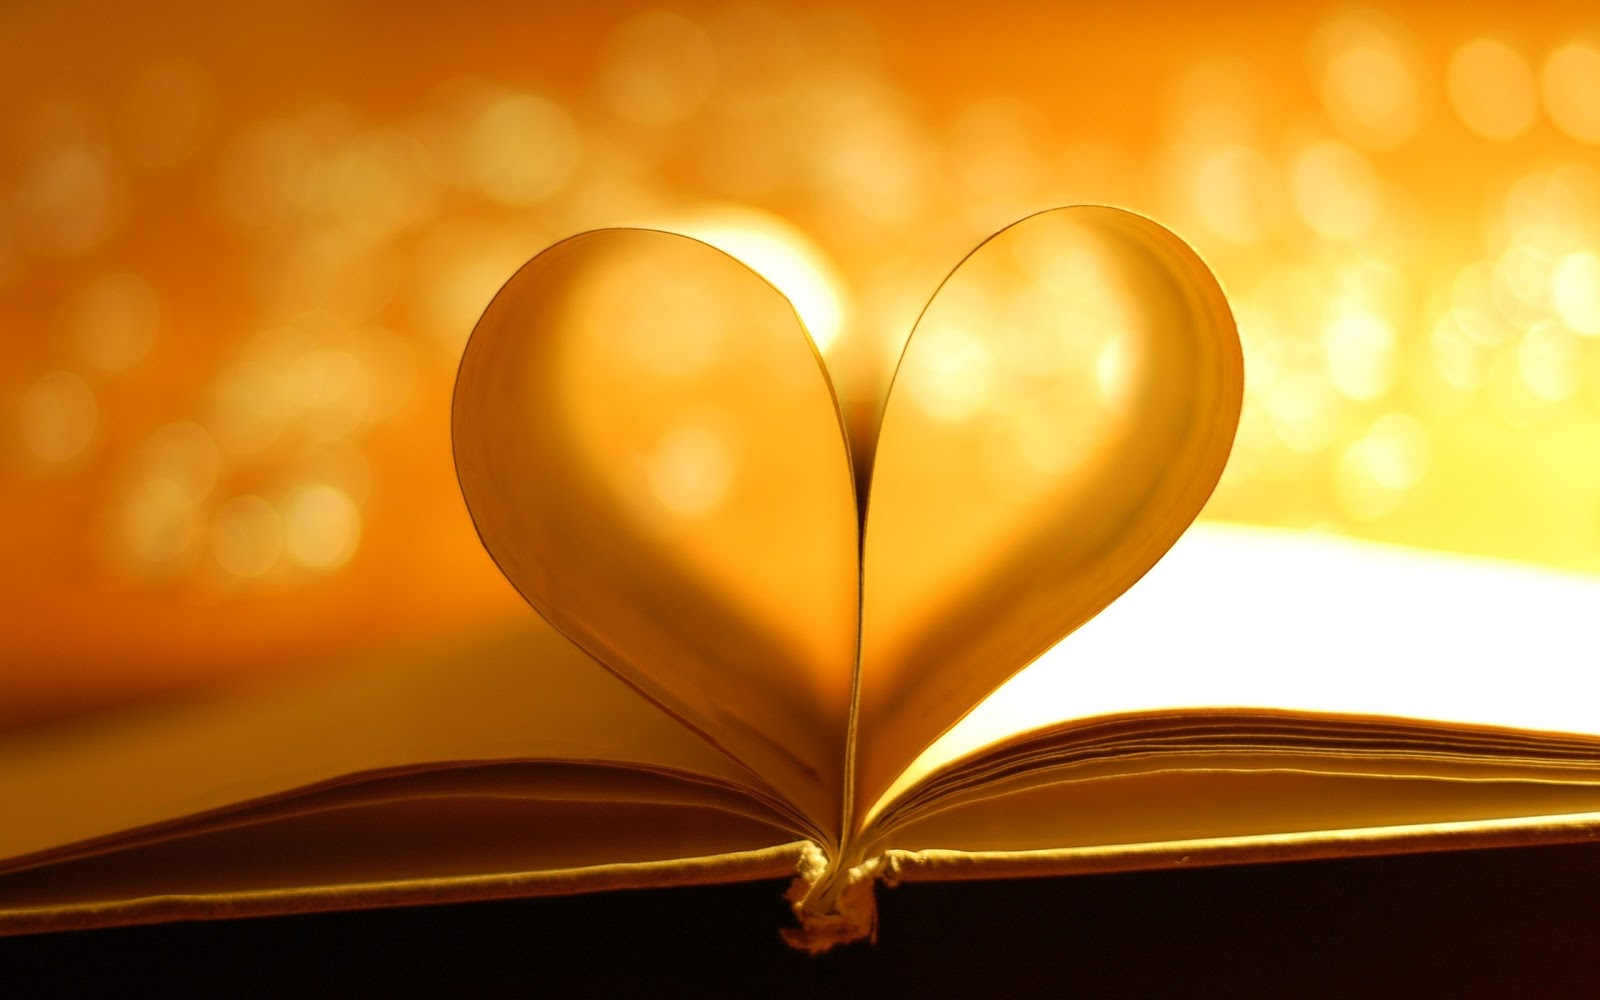 Book Cover Photography Lighting : Love wallpapers free hd romantic